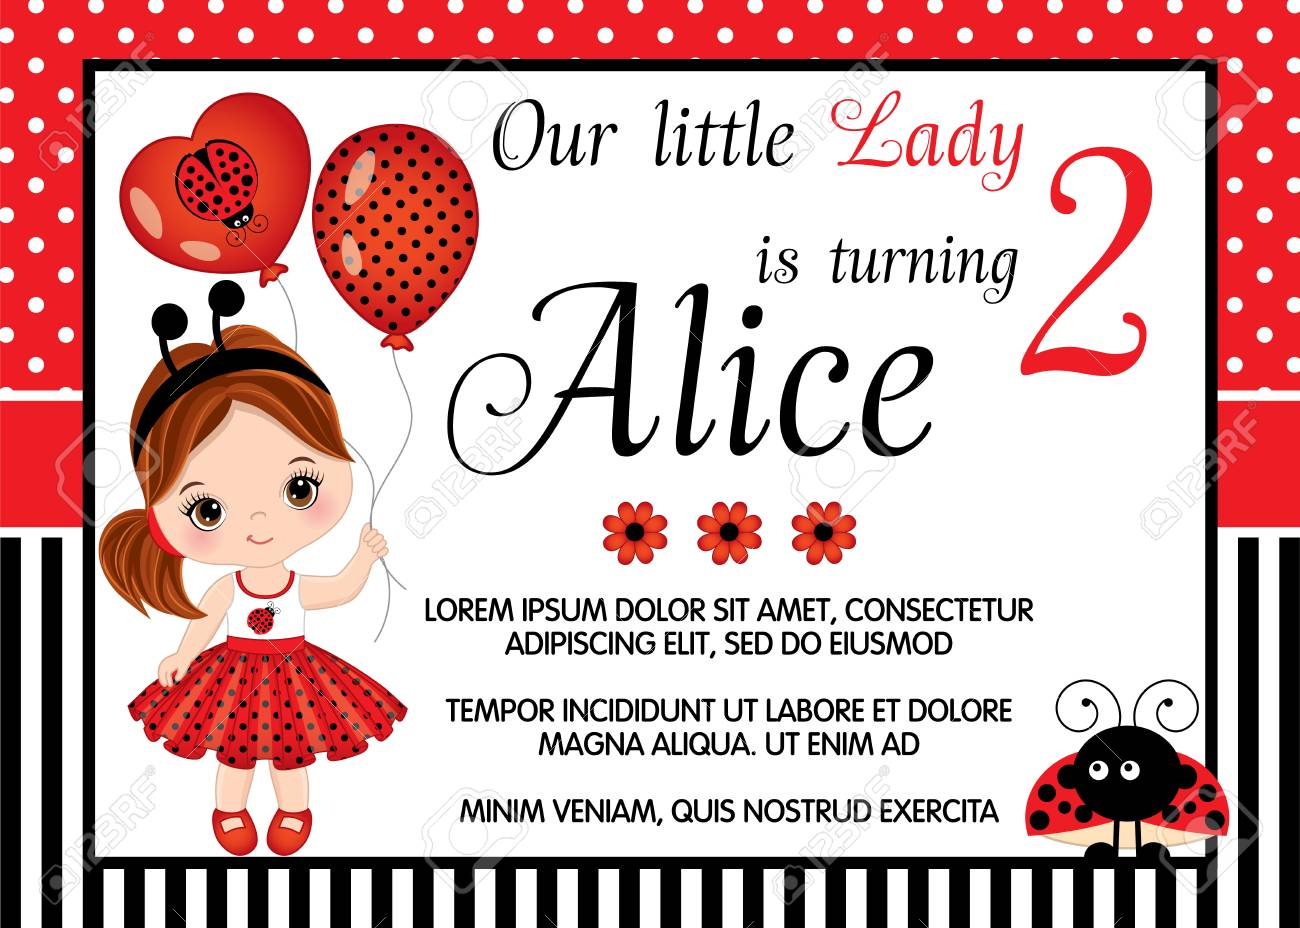 Vector Card Template With Cute Little Girl Dressed As Ladybug